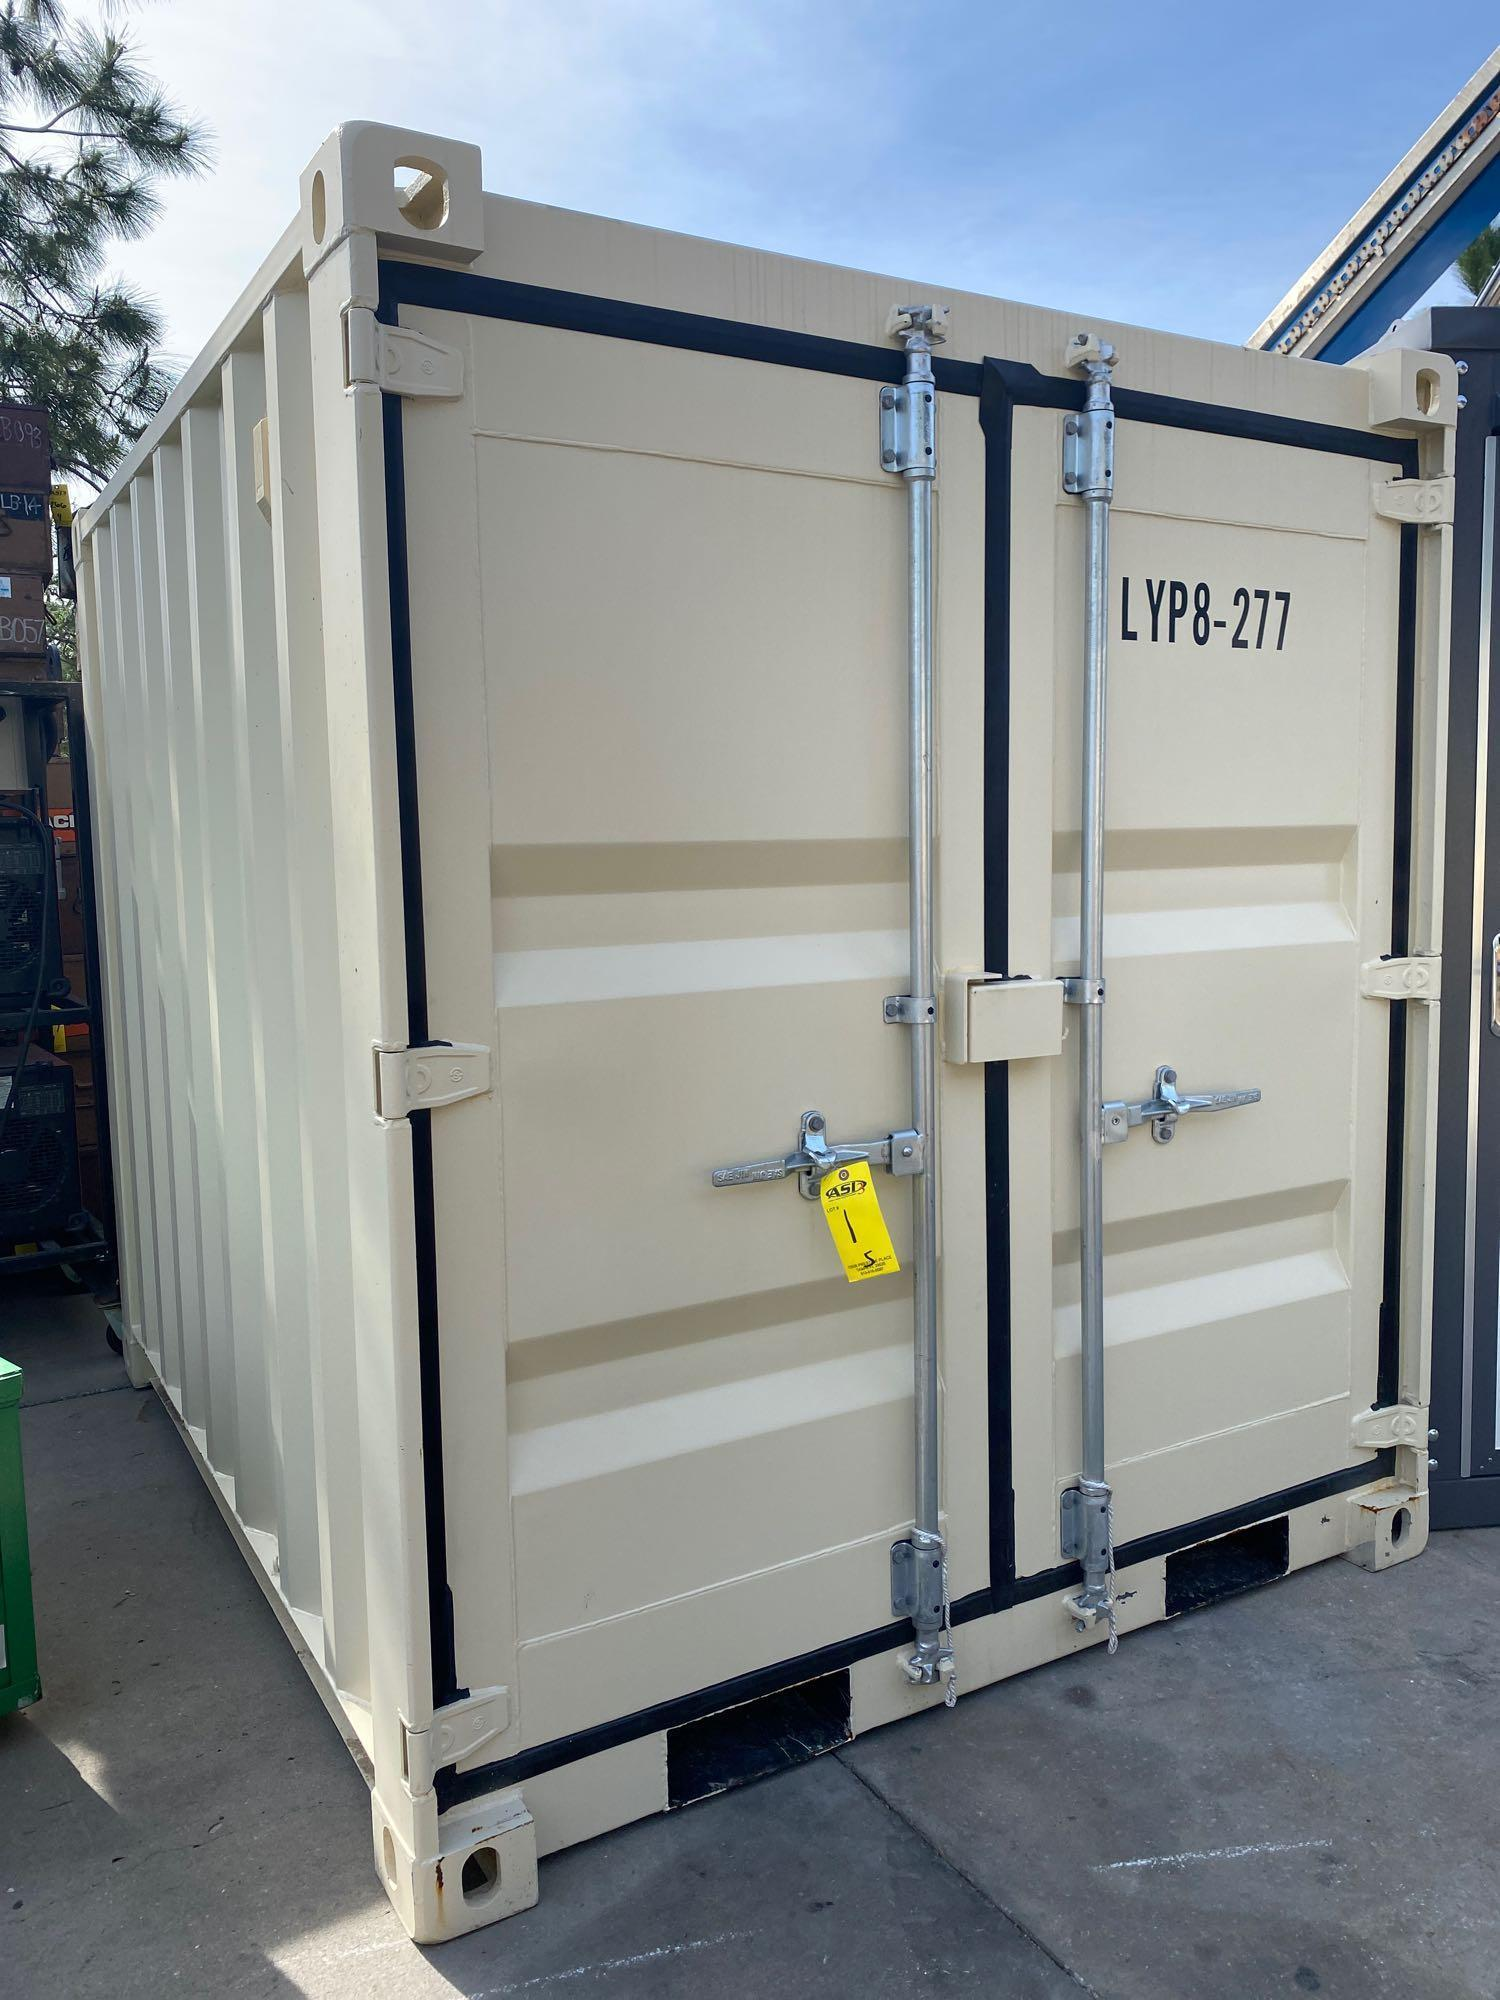 """UNUSED PORTABLE OFFICE/STORAGE CONTAINER WITH WINDOW AND SIDE DOOR, APPROX 77""""w 84""""t 98"""" deep"""